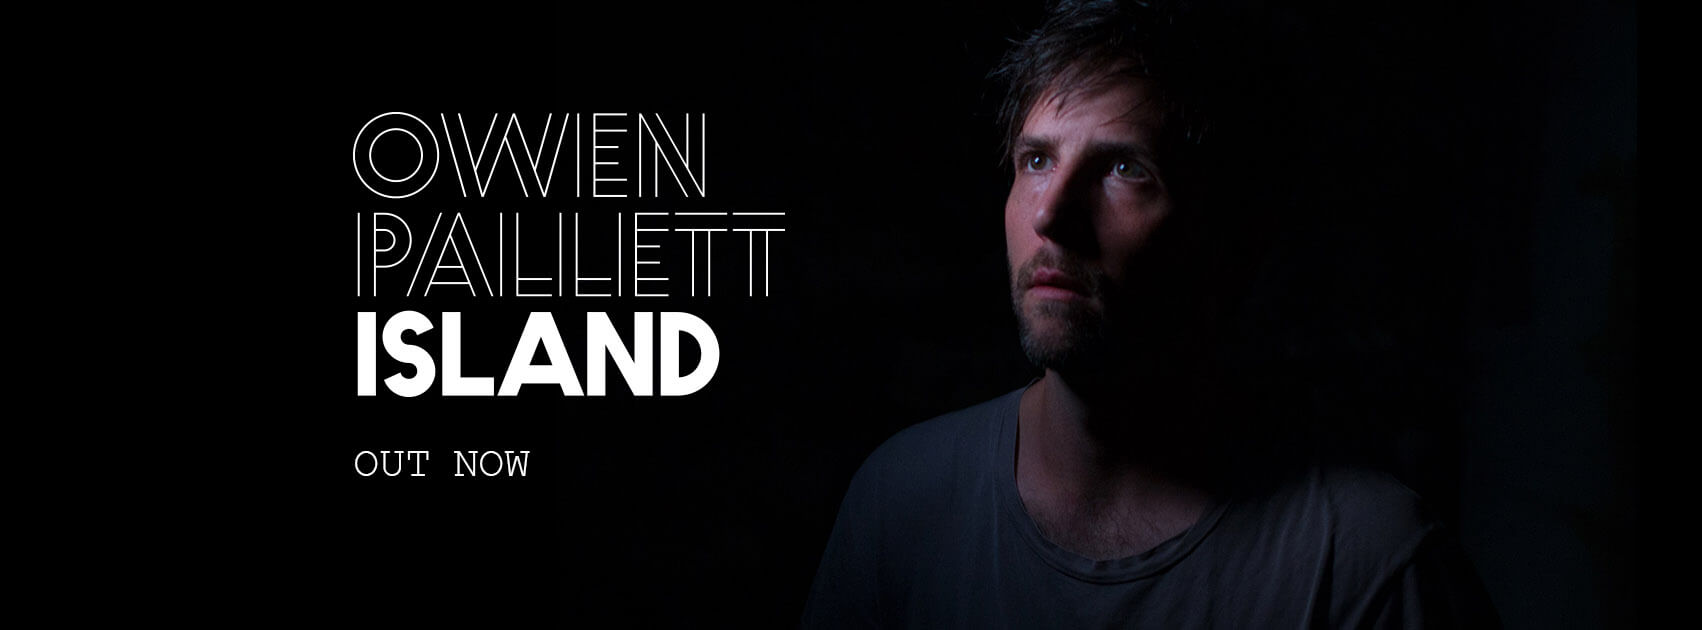 OwenPallett-SCRWebsite-EN